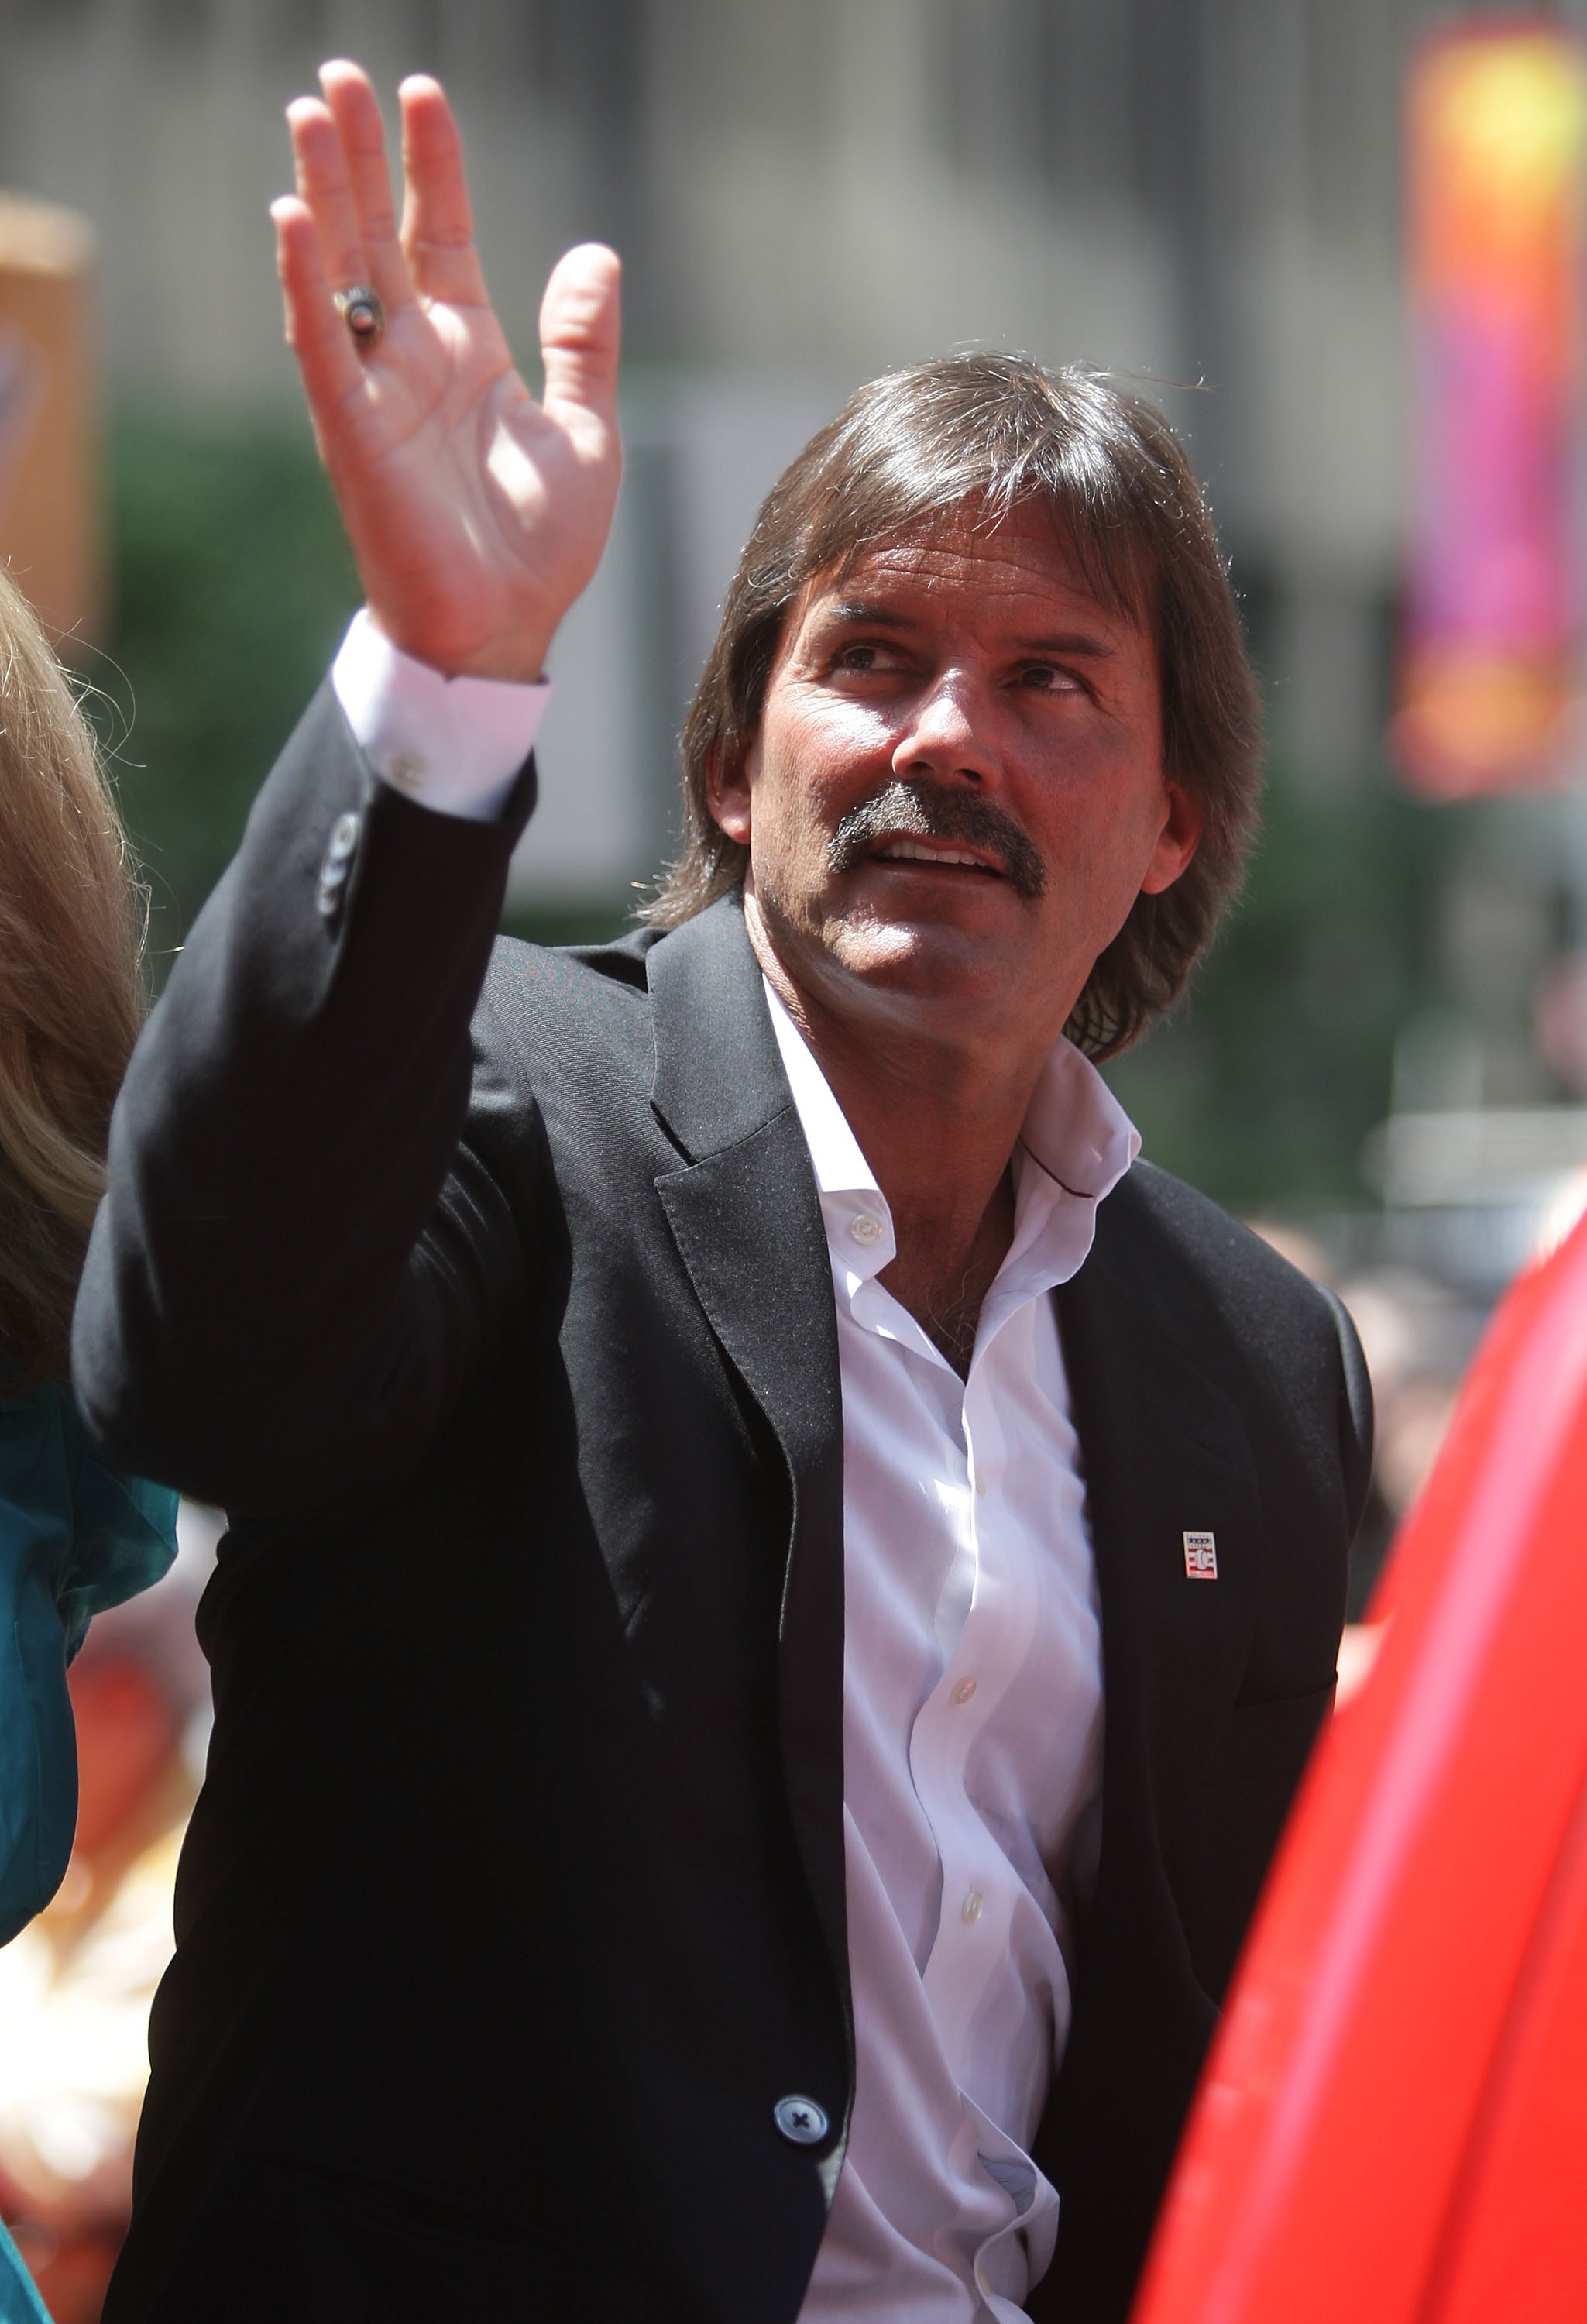 NEW YORK - JULY 15:  Halll of famer Dennis Eckersley waves during the MLB All-Star Game Red Carpet Parade on July 15, 2008 in New York City.  (Photo by Mike Stobe/Getty Images)